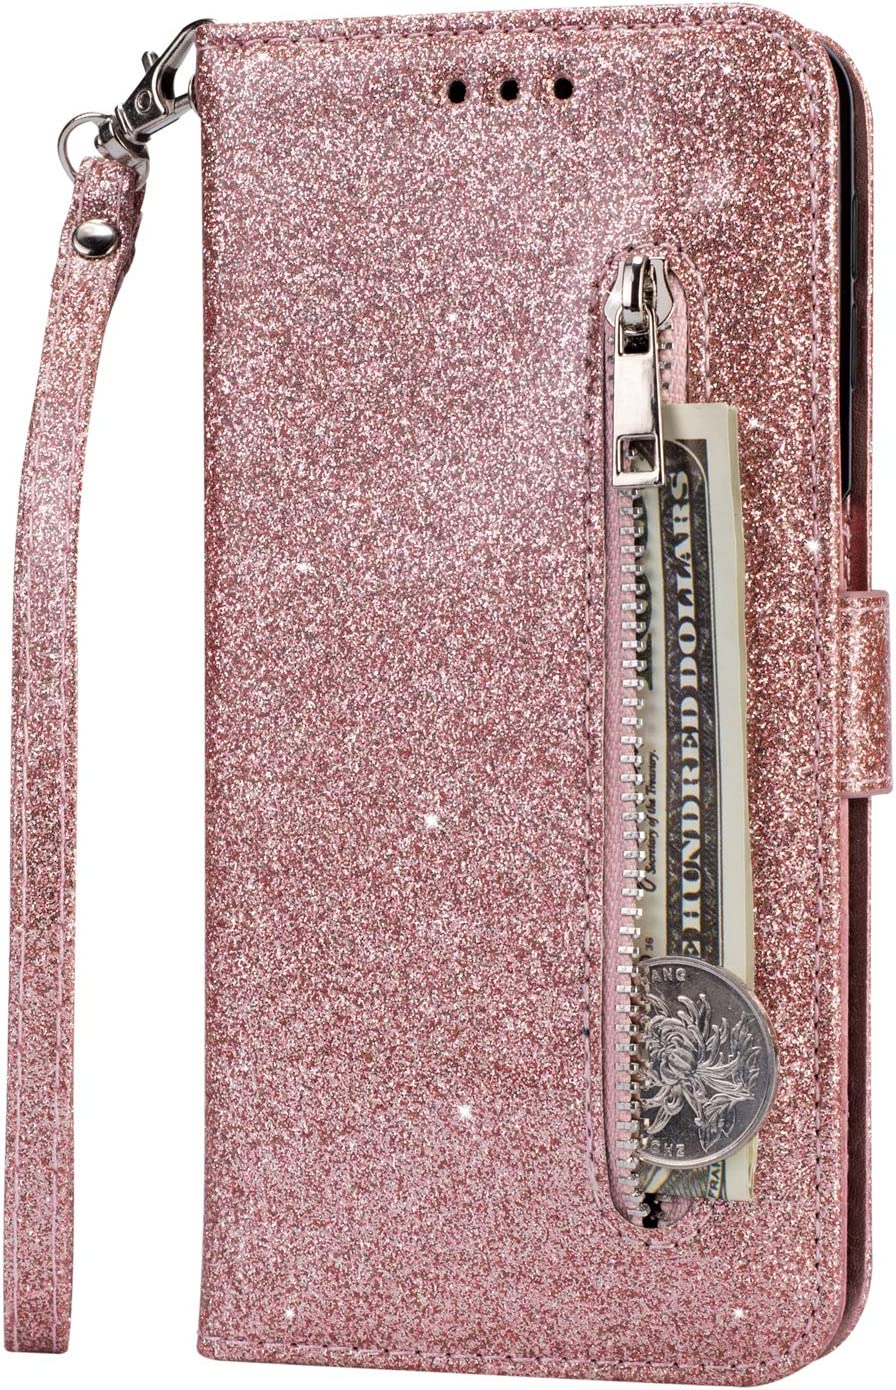 Luxury Glitter Bling Zipper Wallet Phone Case for Huawei P30 Pro MOIKY Bookstyle PU Leather Flip Folio Magnetic Purse Pockets Credit Card Holder Wrist Strap Case Cover for Huawei P30 Pro Rose Red